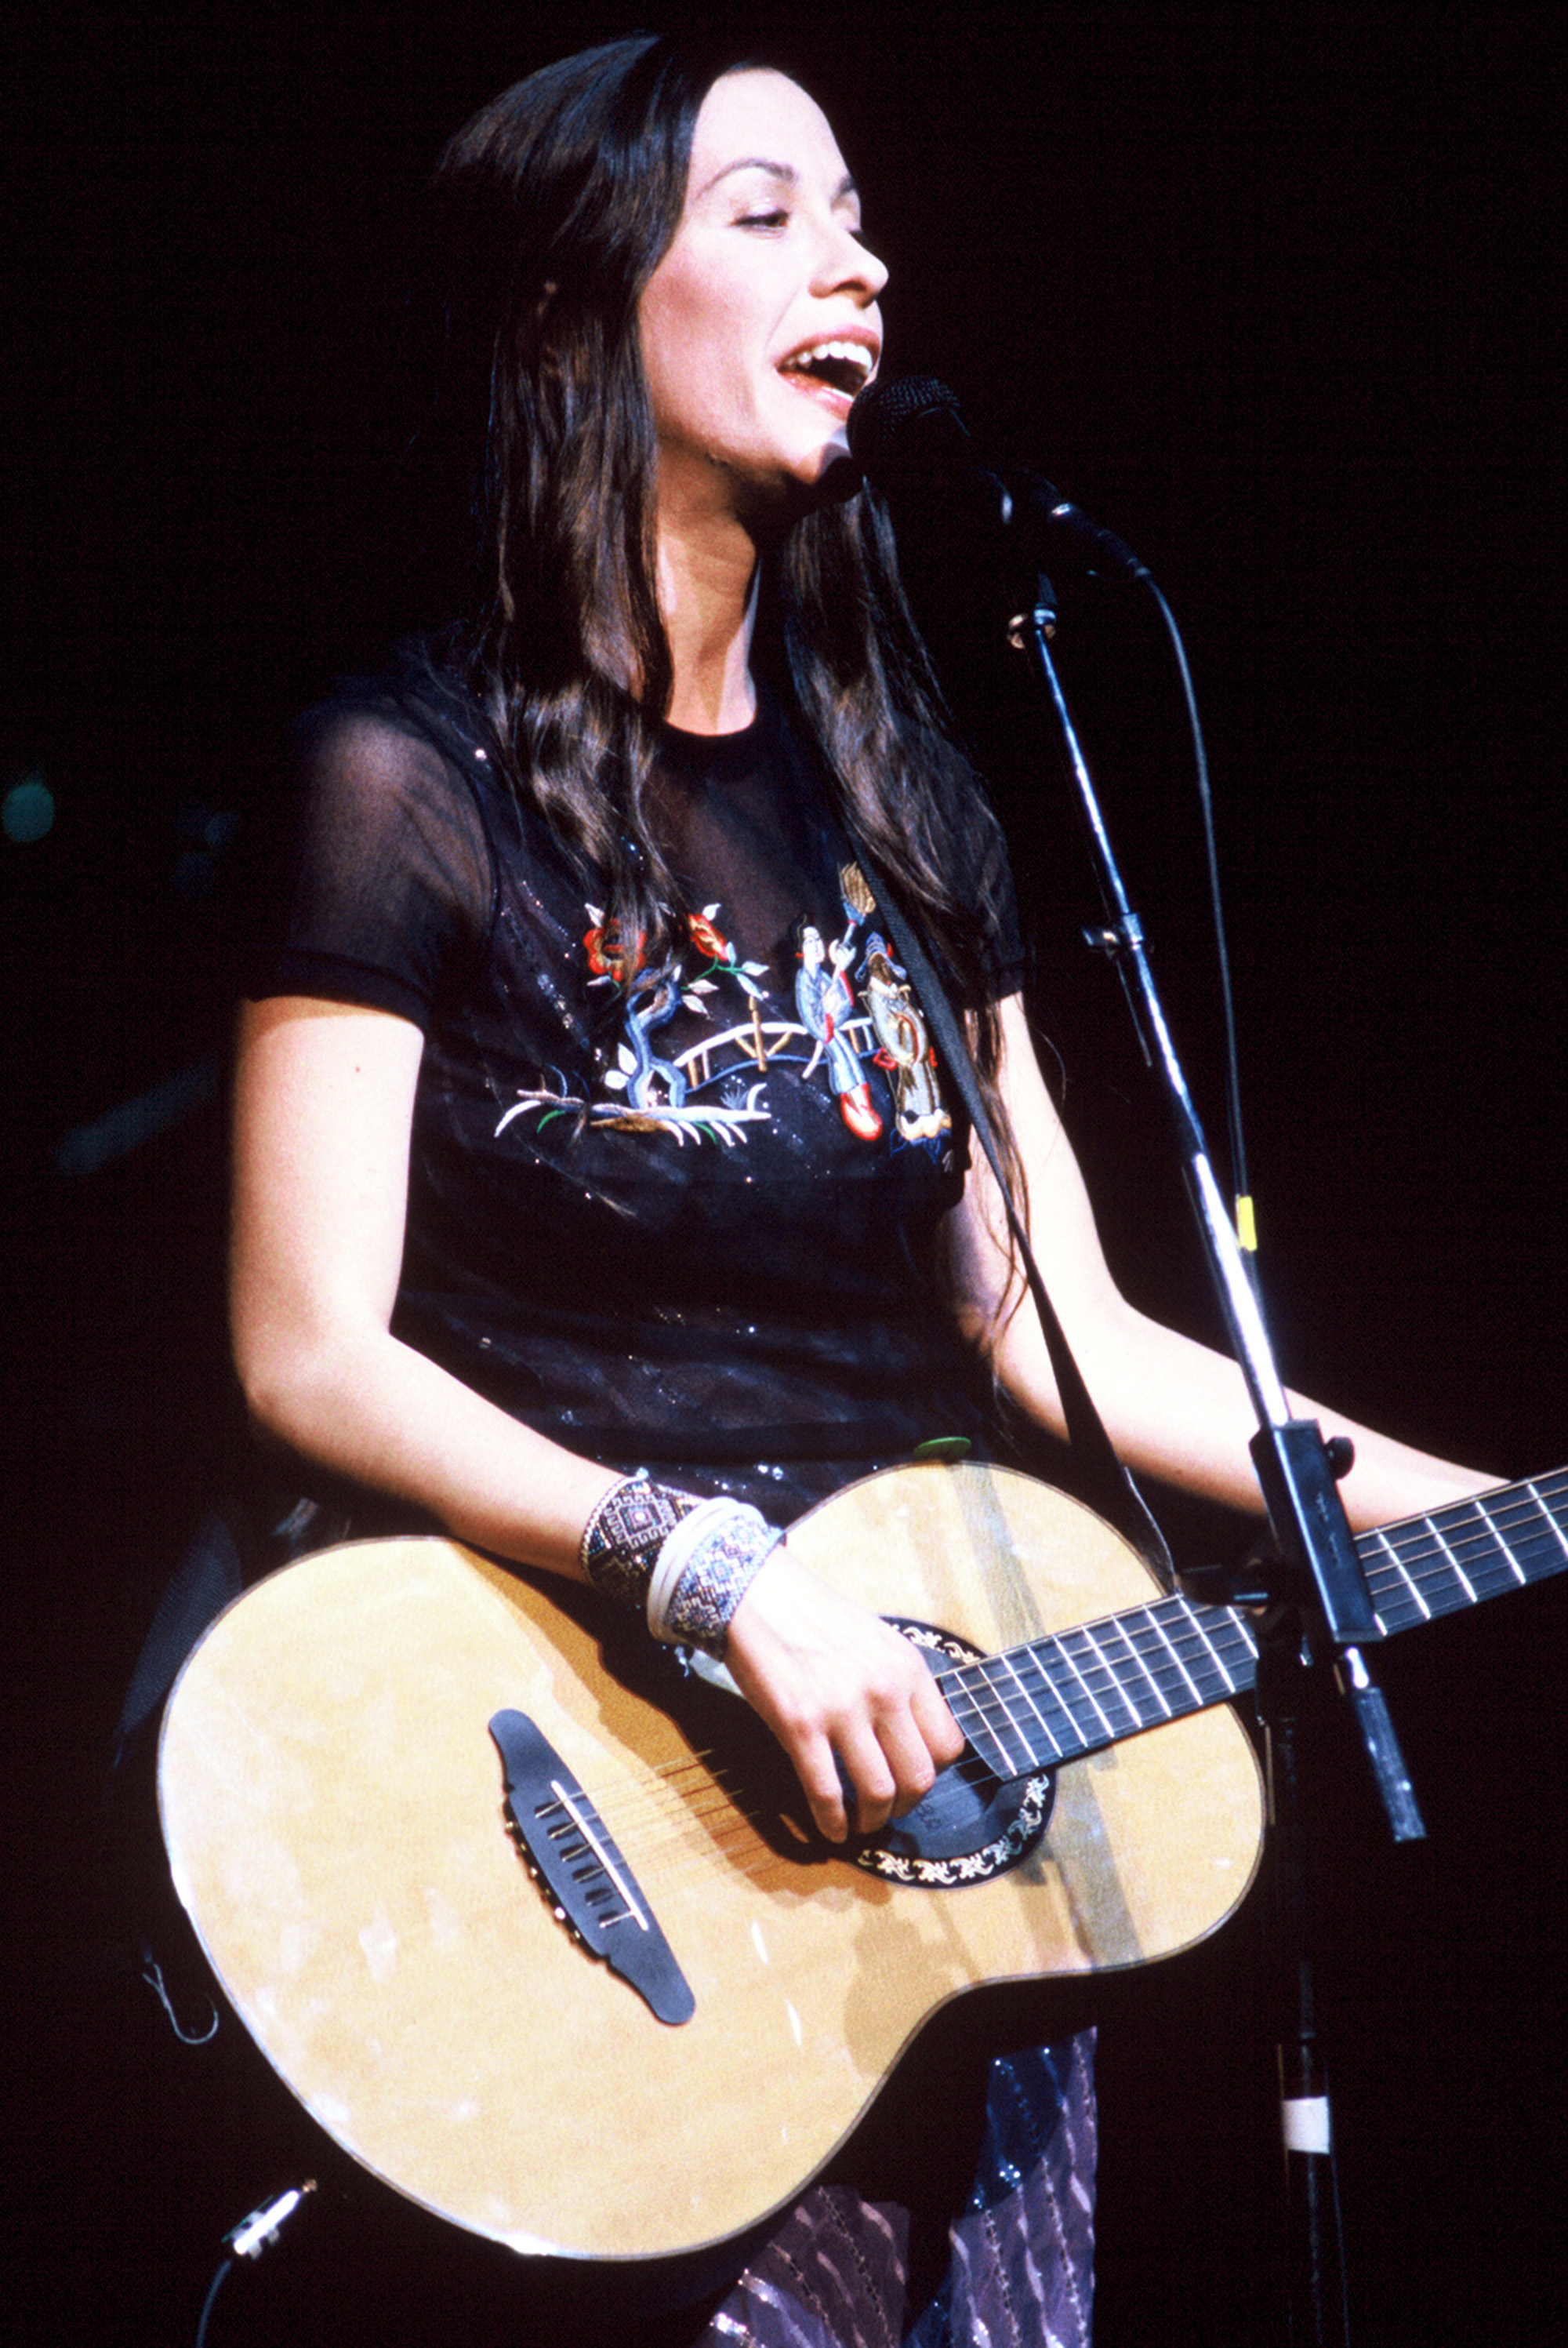 Alanis Morissette says that when she turned 15, men in the music industry began to aggressively hit on her.